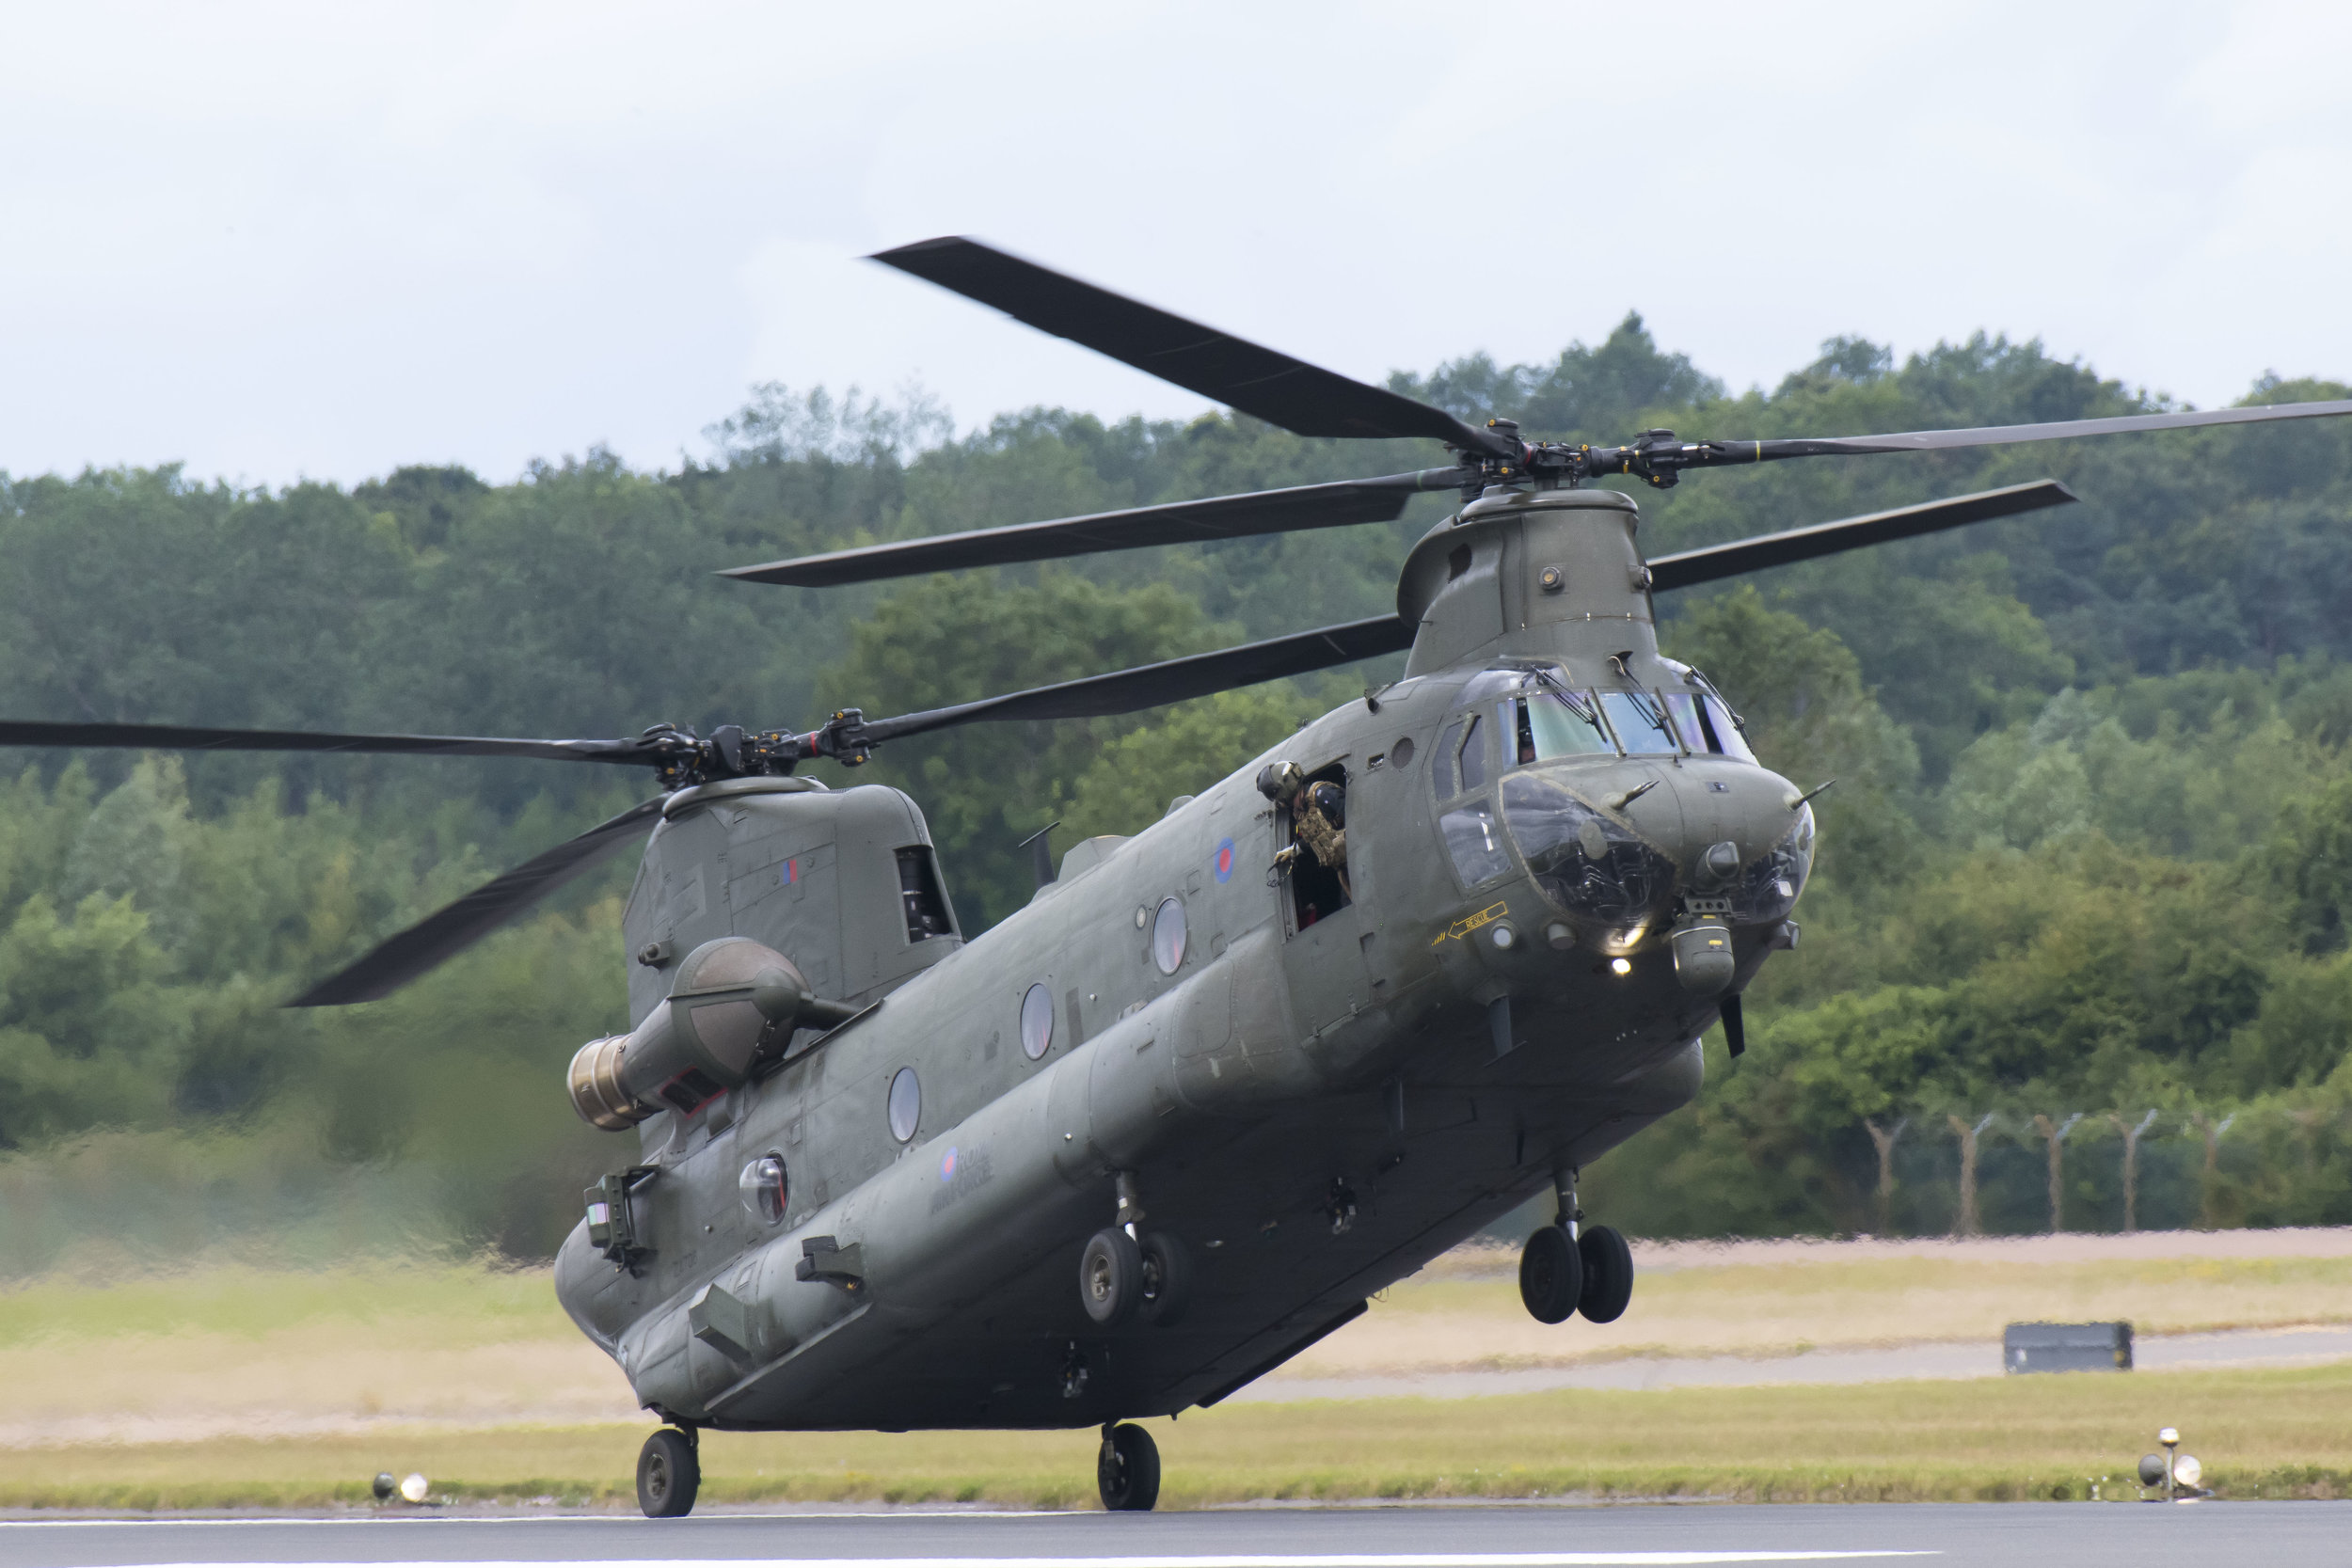 FAIRFORD, ENGLAND - JULY 21: A RAF Chinook performs during the the International Air Tattoo at RAF Fairford on July 21, 2019 in Fairford, England. The Royal International Air Tattoo (RIAT) is the world's largest military air show, held in support of The Royal Air Force Charitable Trust. (Photo by Matthew Horwood/Getty Images)